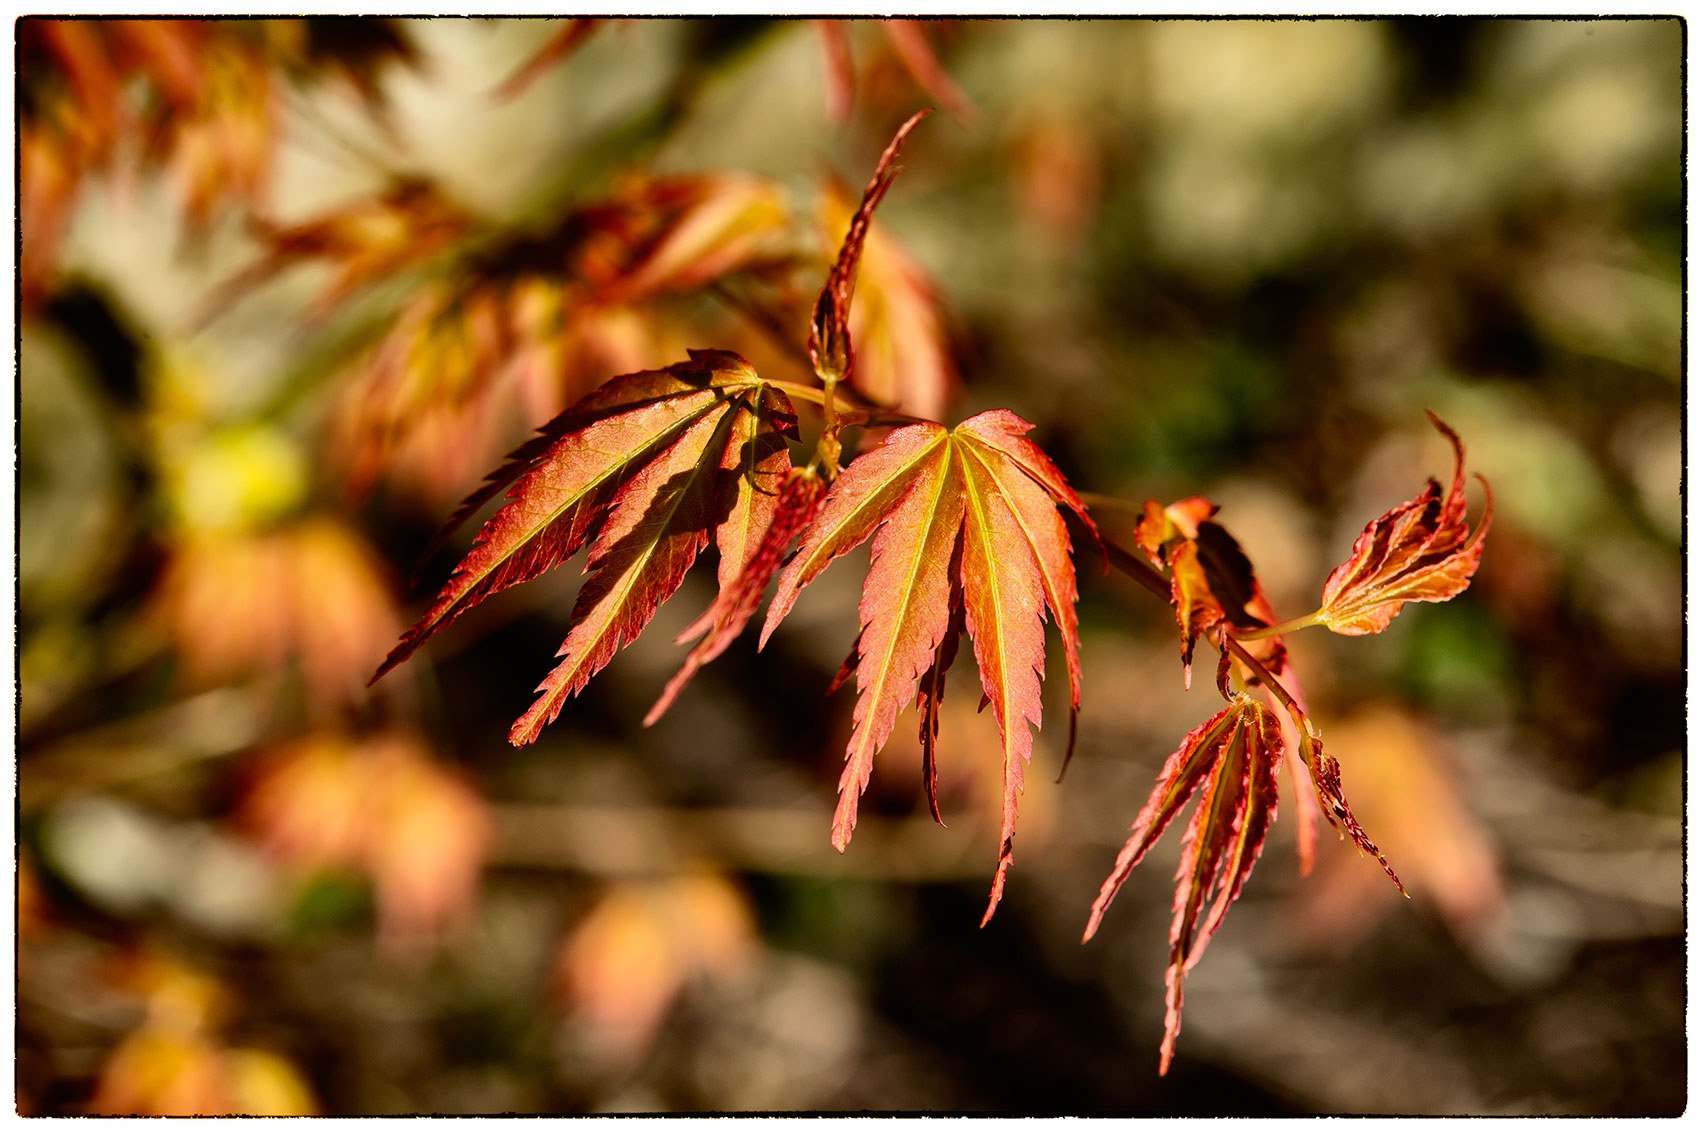 Our lovely Acer is back in leaf. Don't you just love Acers.